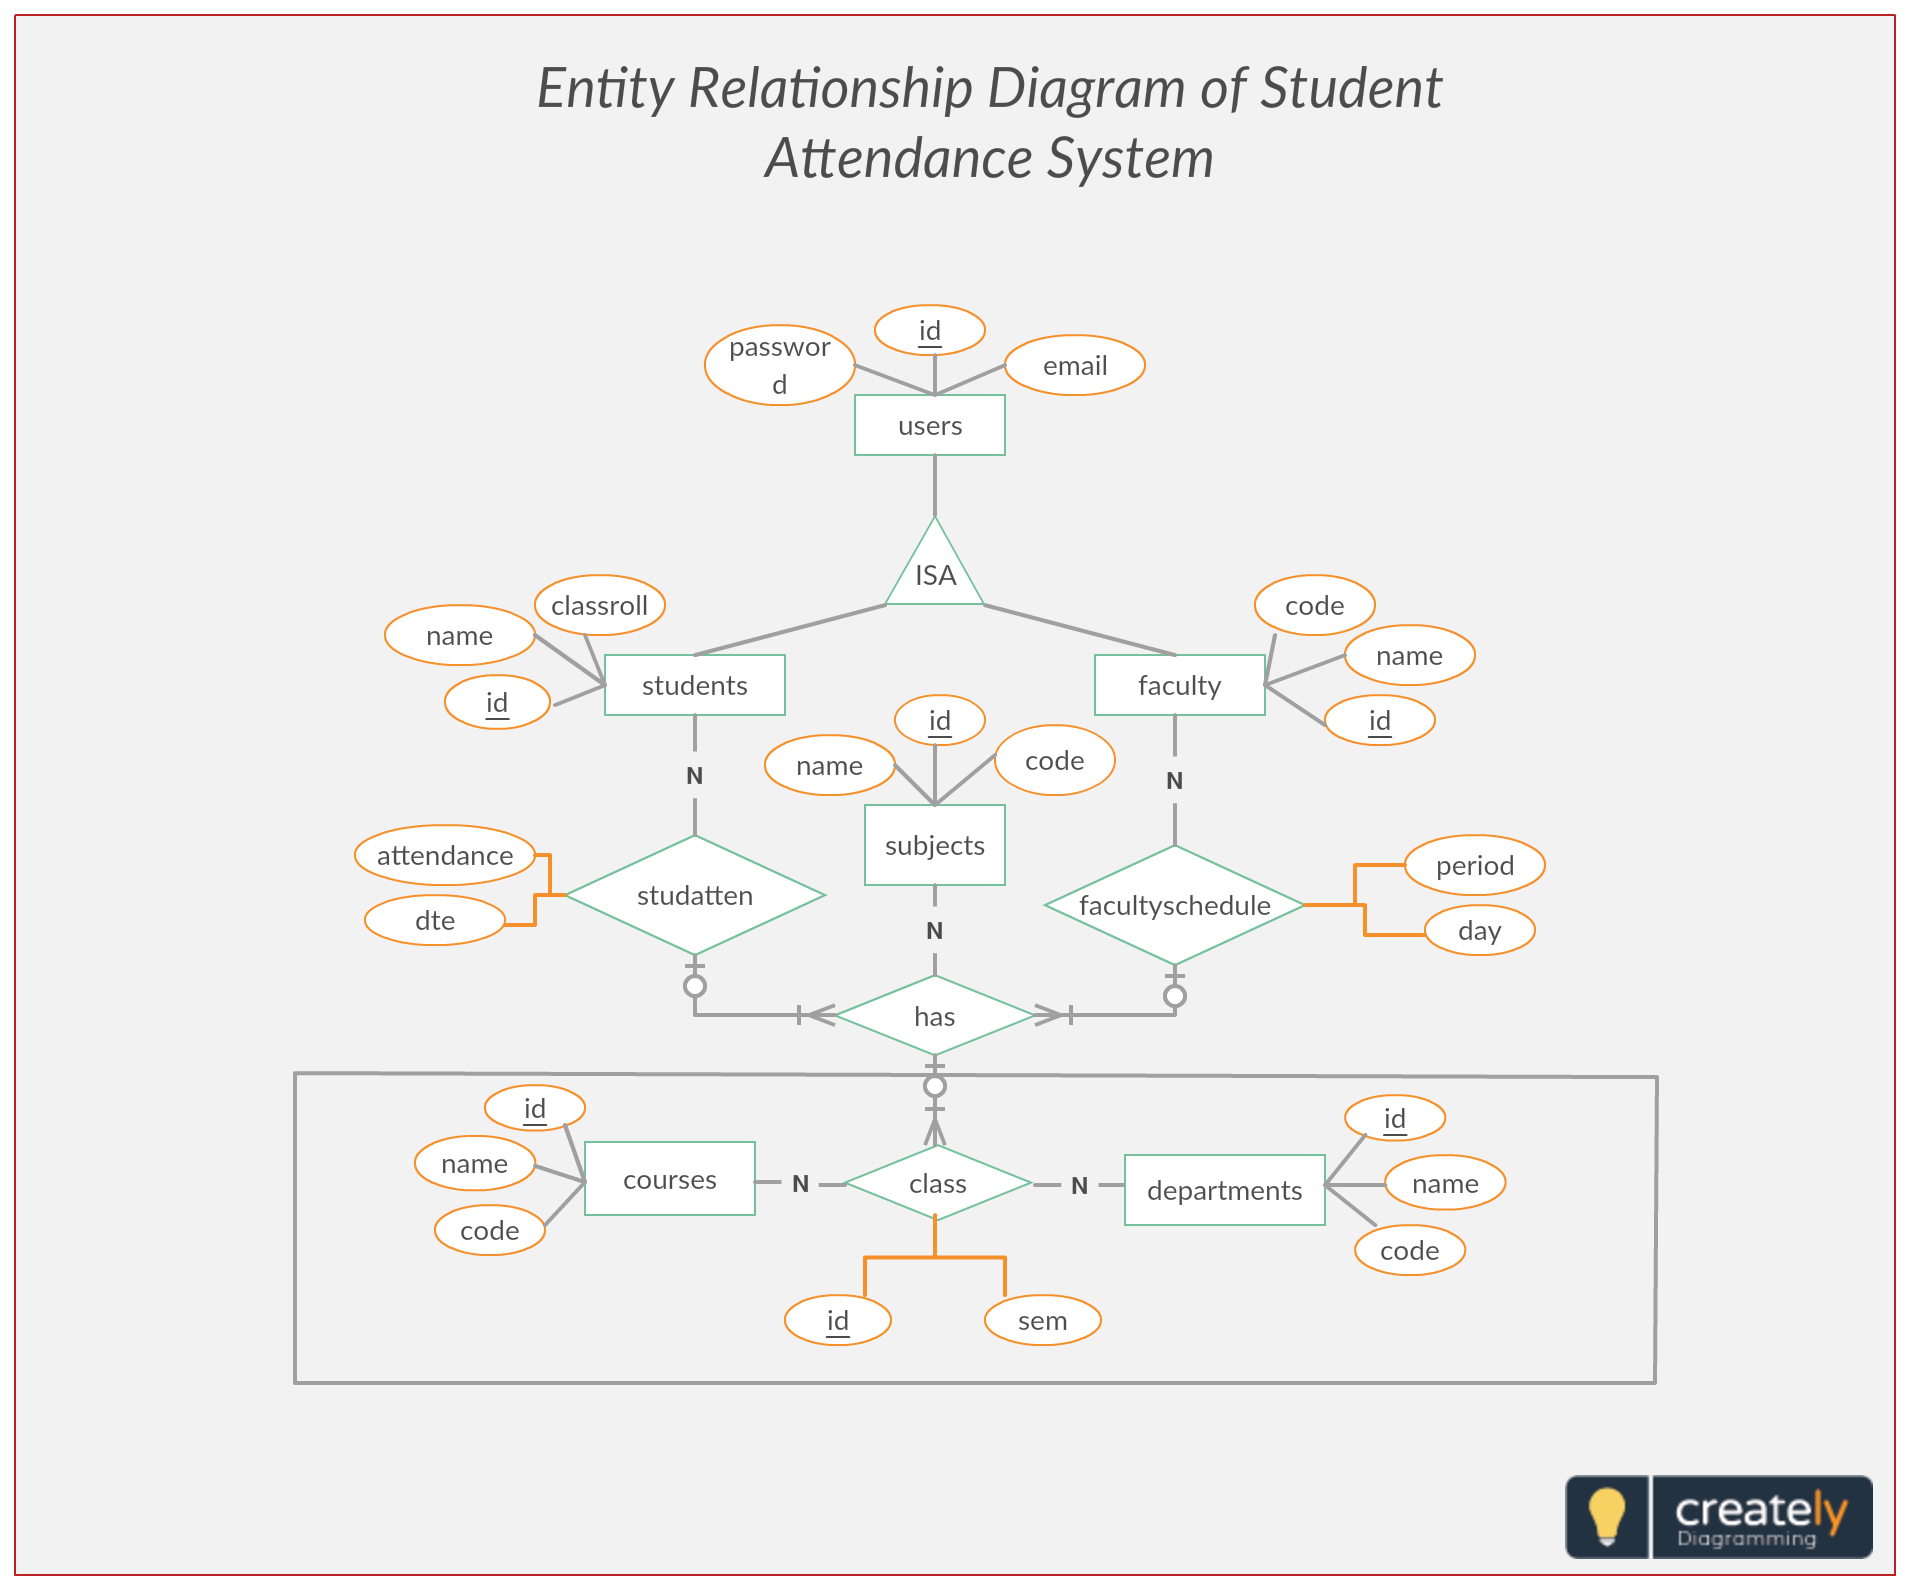 entity relationship diagram represents the relationship between entities in a table click on the image to edit online and download as image files erd er  [ 1910 x 1589 Pixel ]